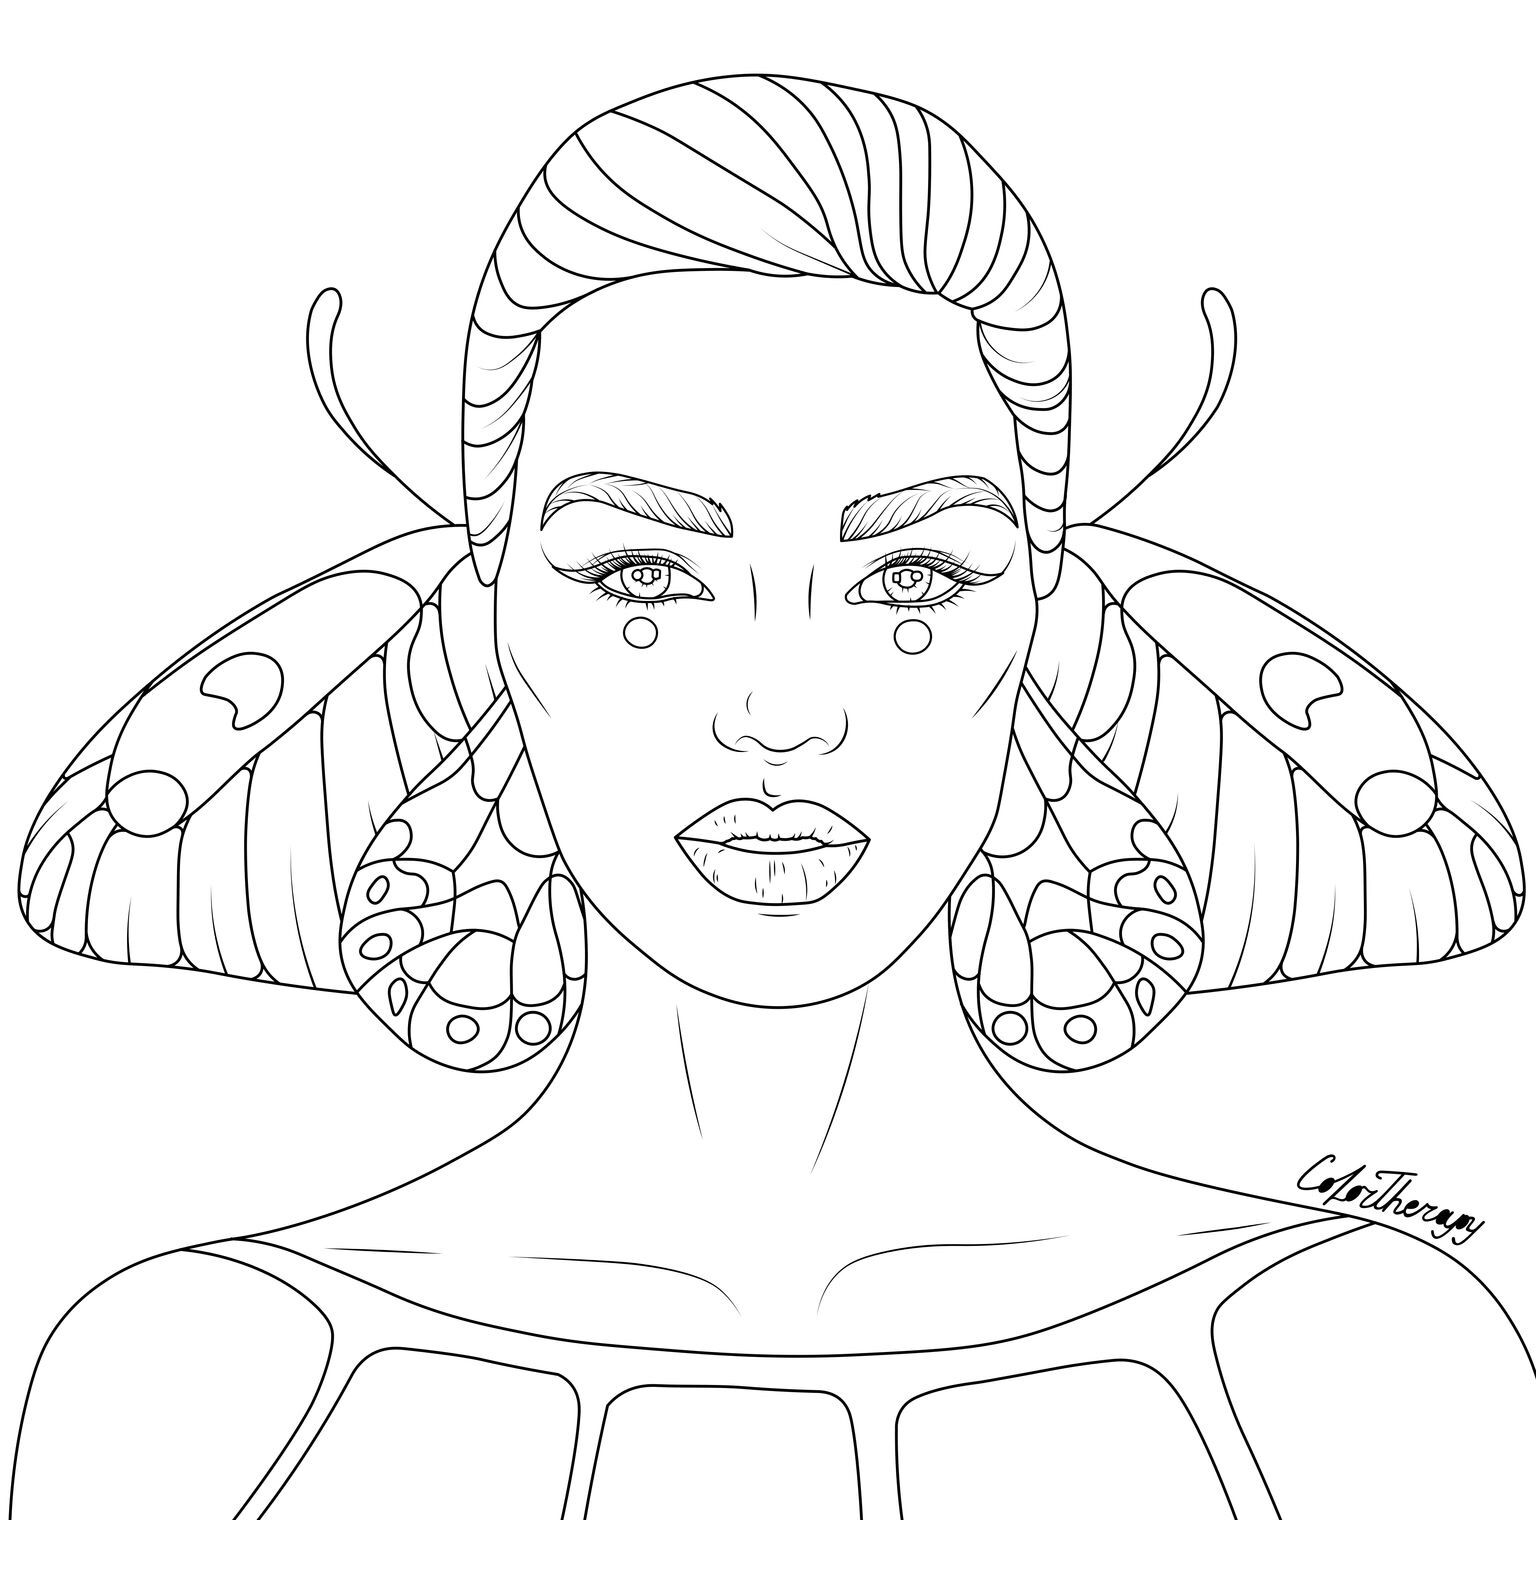 The Sneak Peek For The Next Gift Of The Day Tomorrow Do You Like This One Lady Butterfly Butterfly Coloring Page Coloring Pages Coloring Books